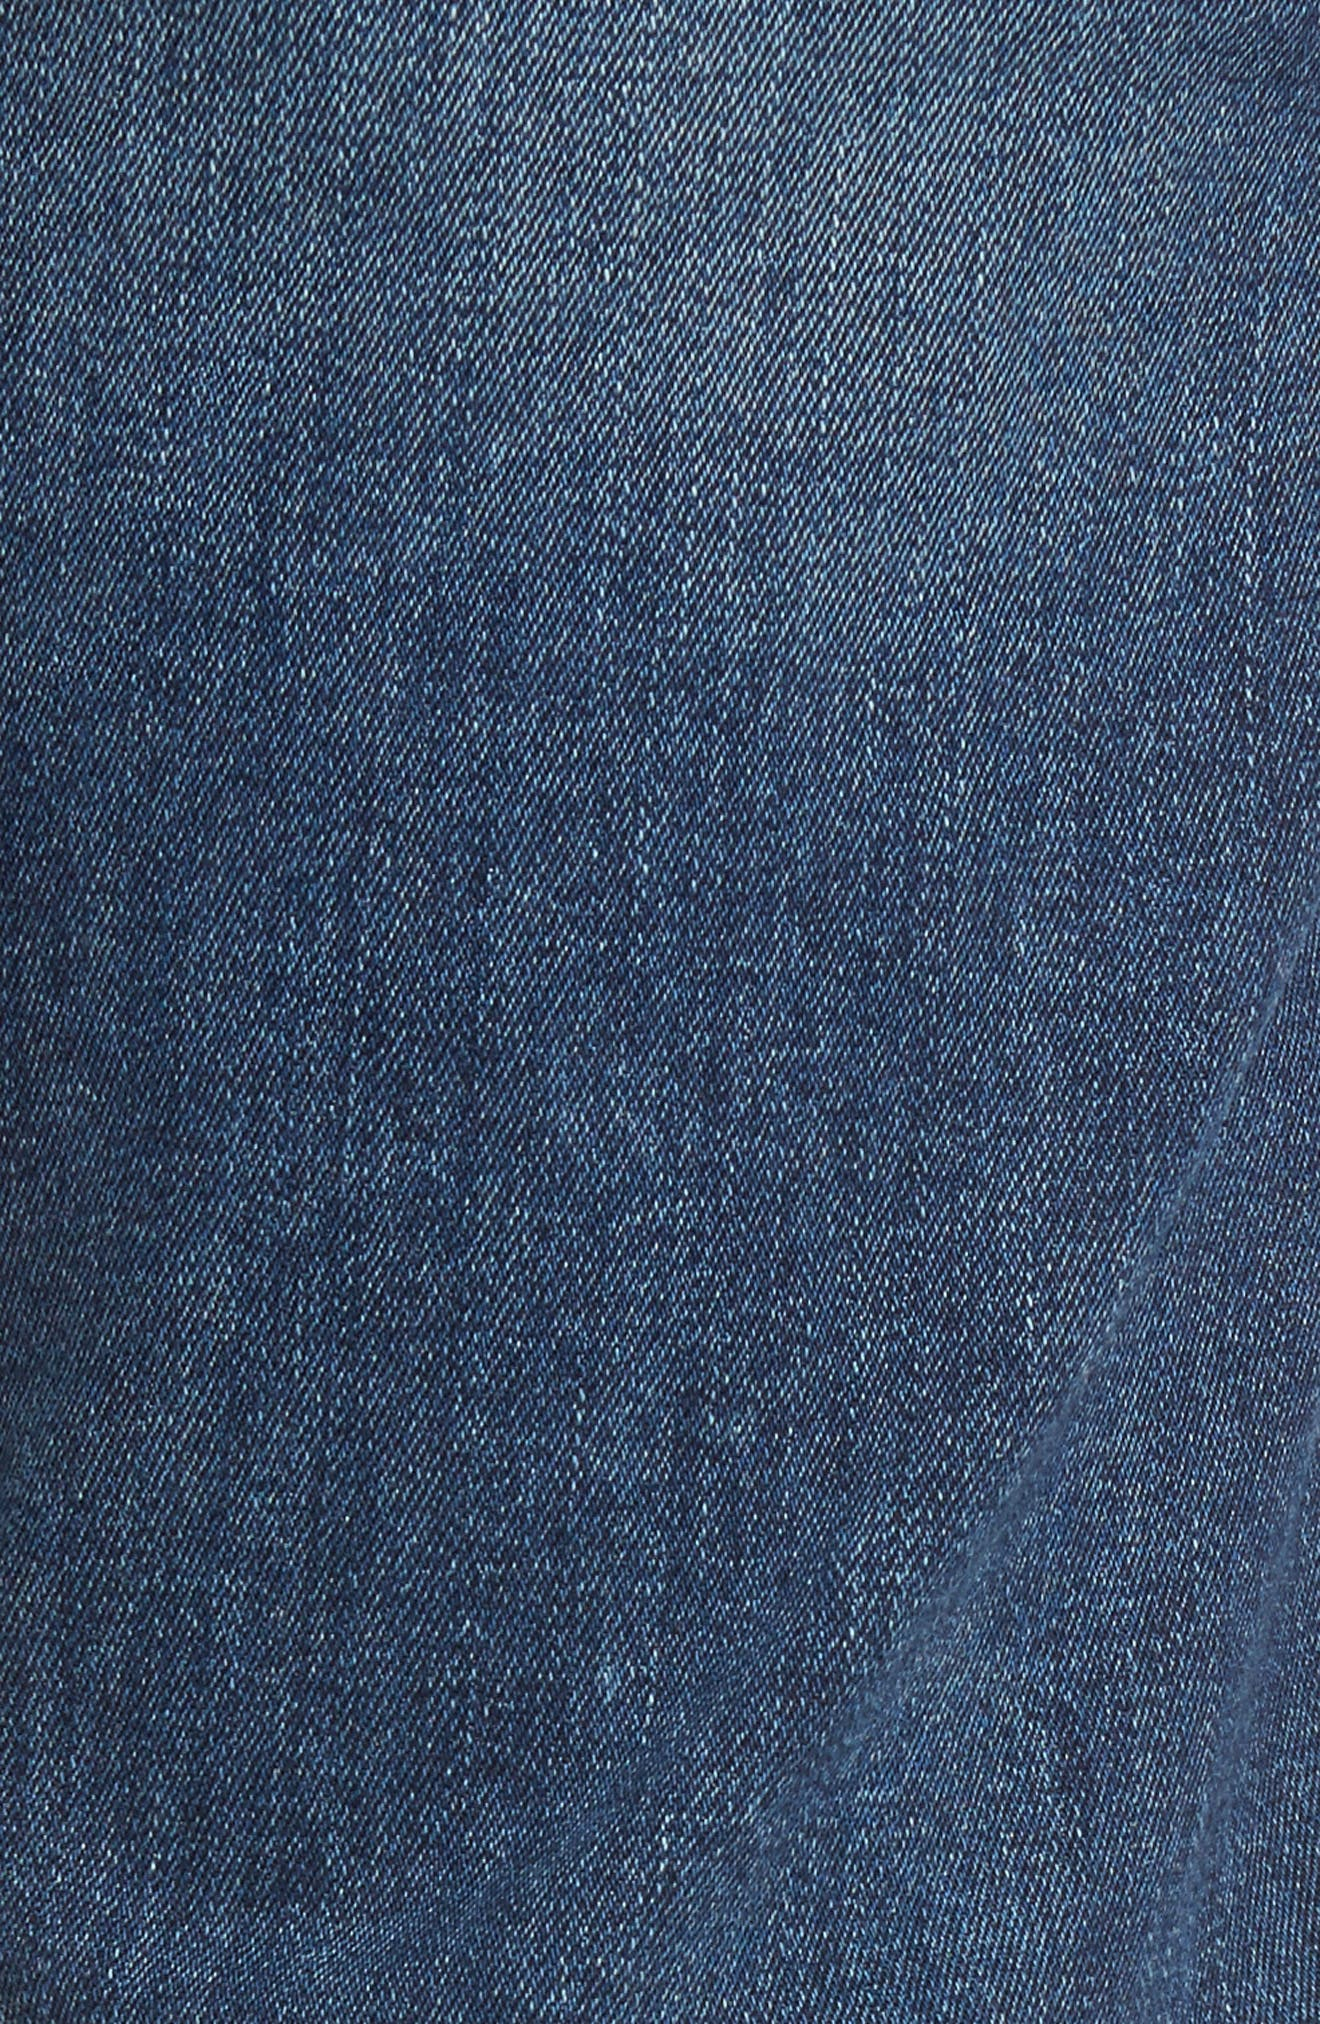 Russell Slim Straight Fit Jeans,                             Alternate thumbnail 5, color,